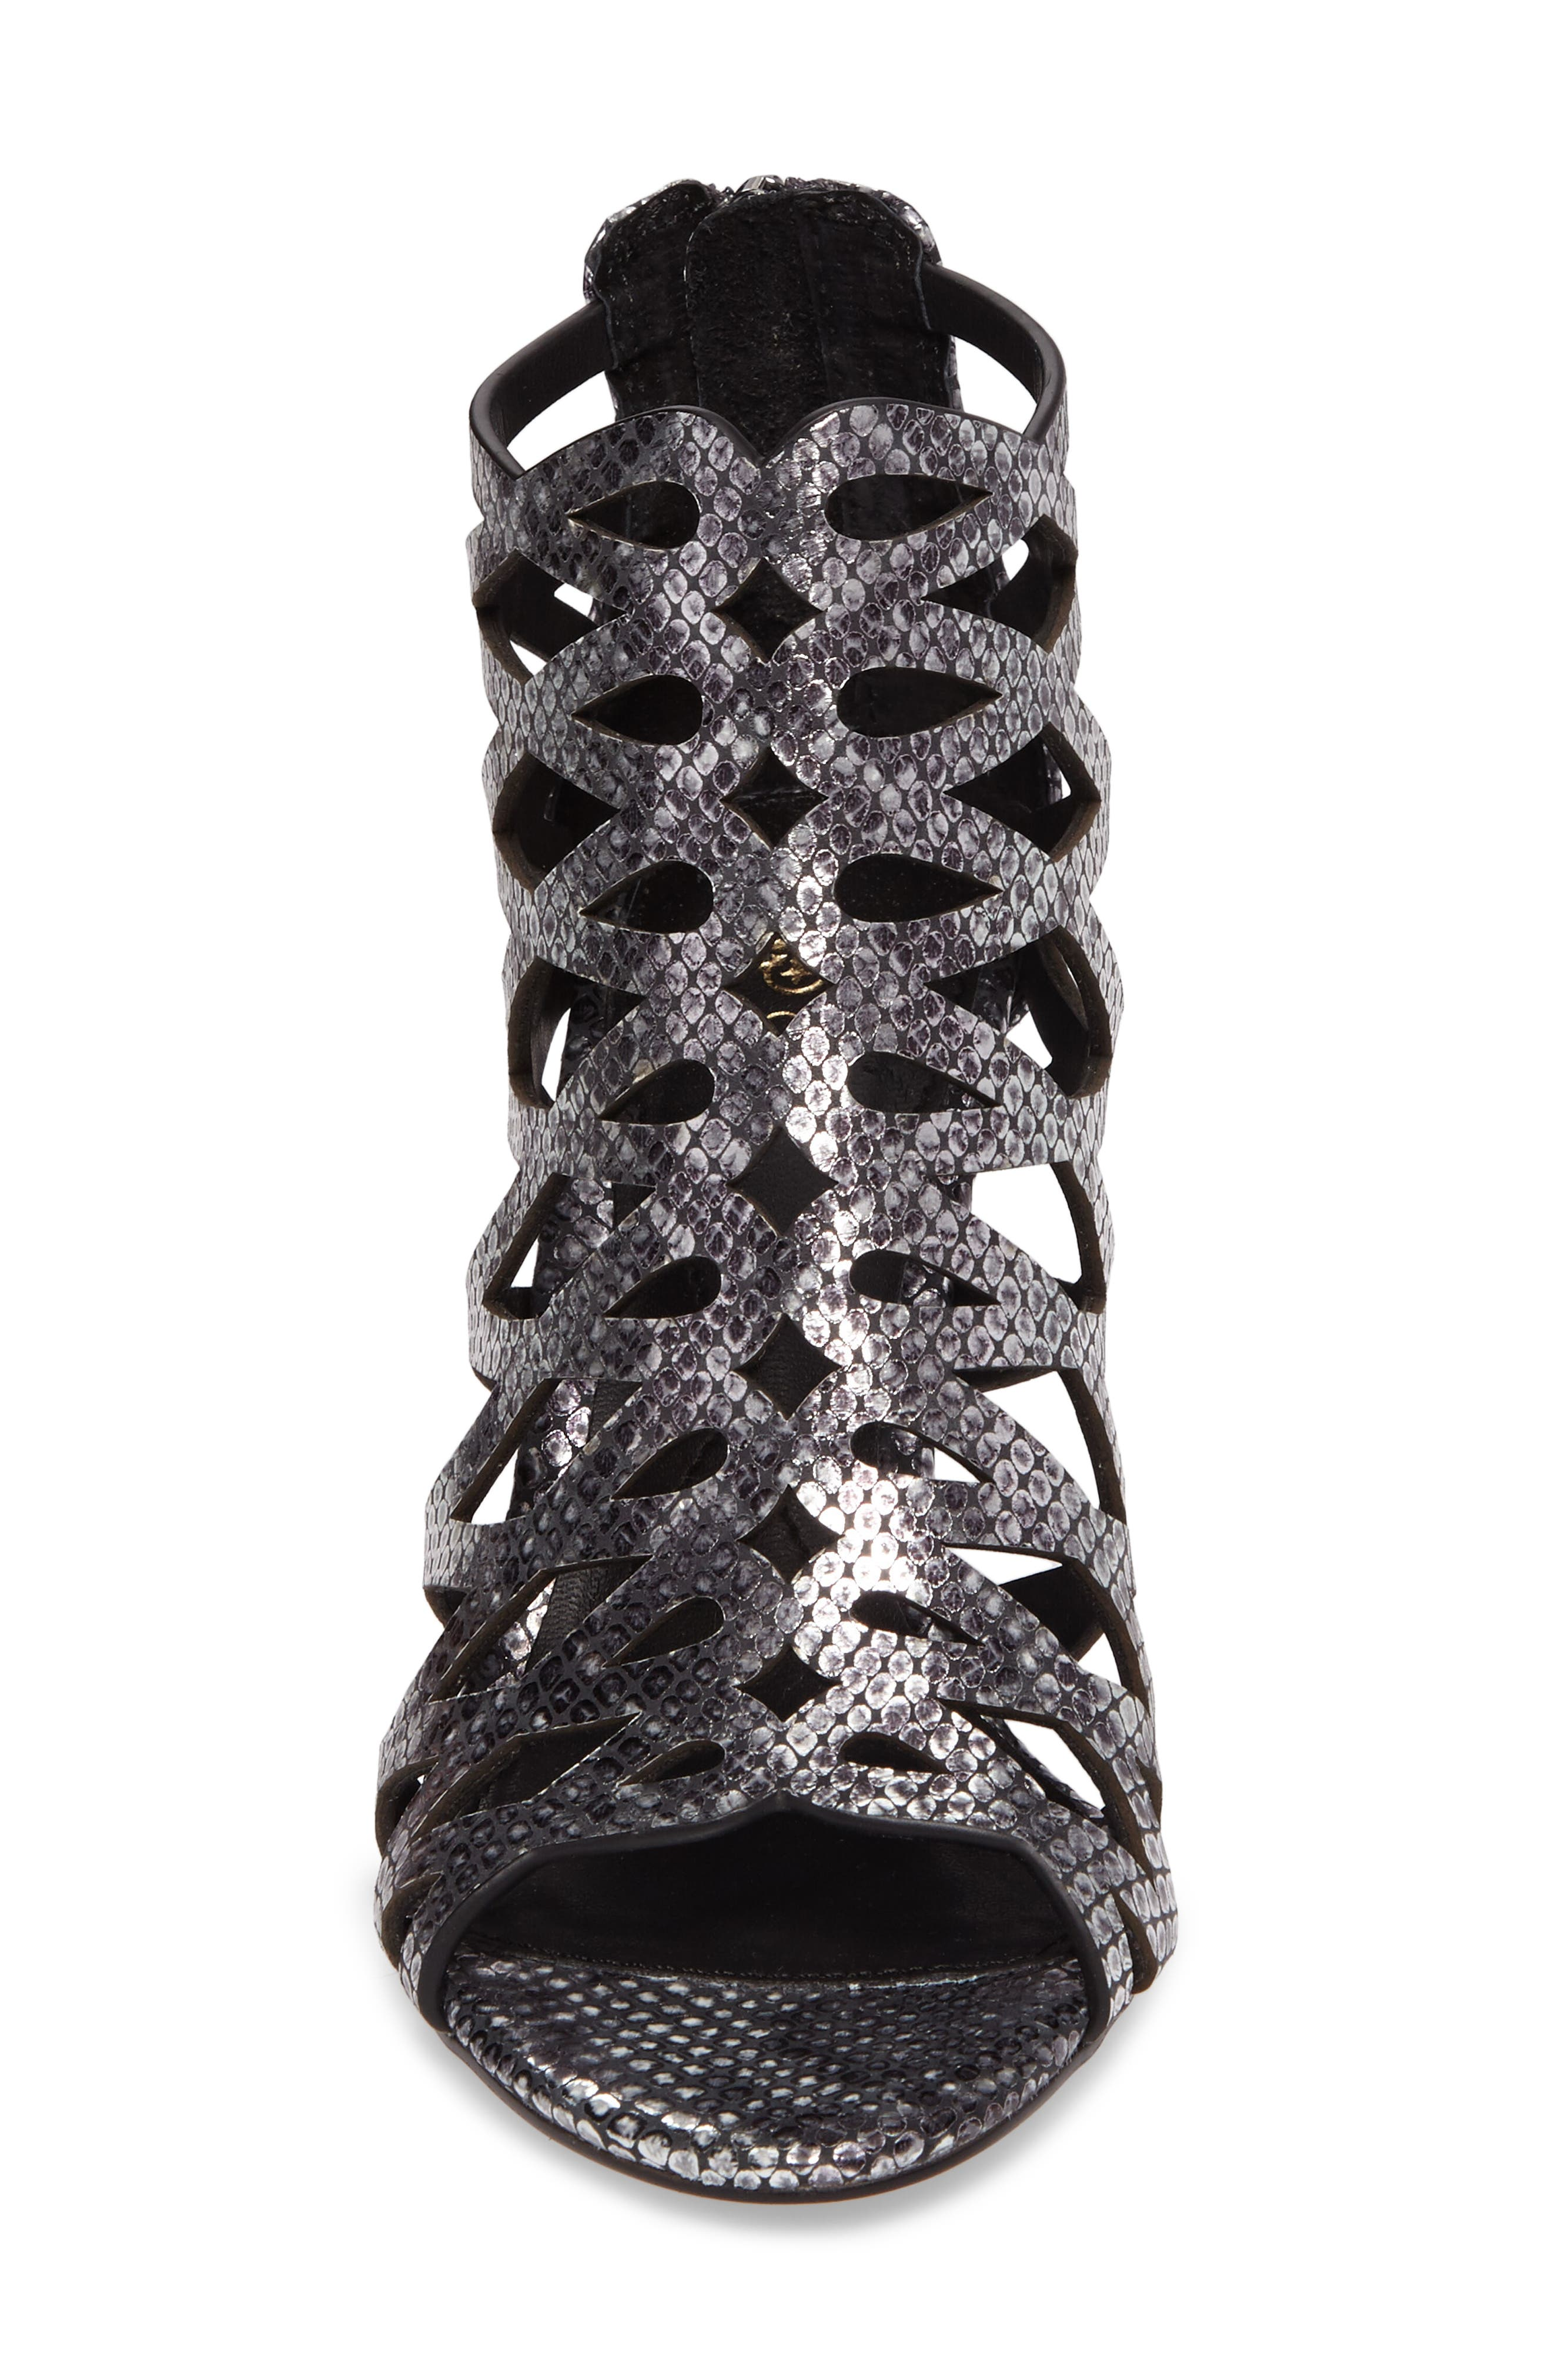 Debra Cage Sandal,                             Alternate thumbnail 4, color,                             ANTHRACITE SNAKE PRINT LEATHER